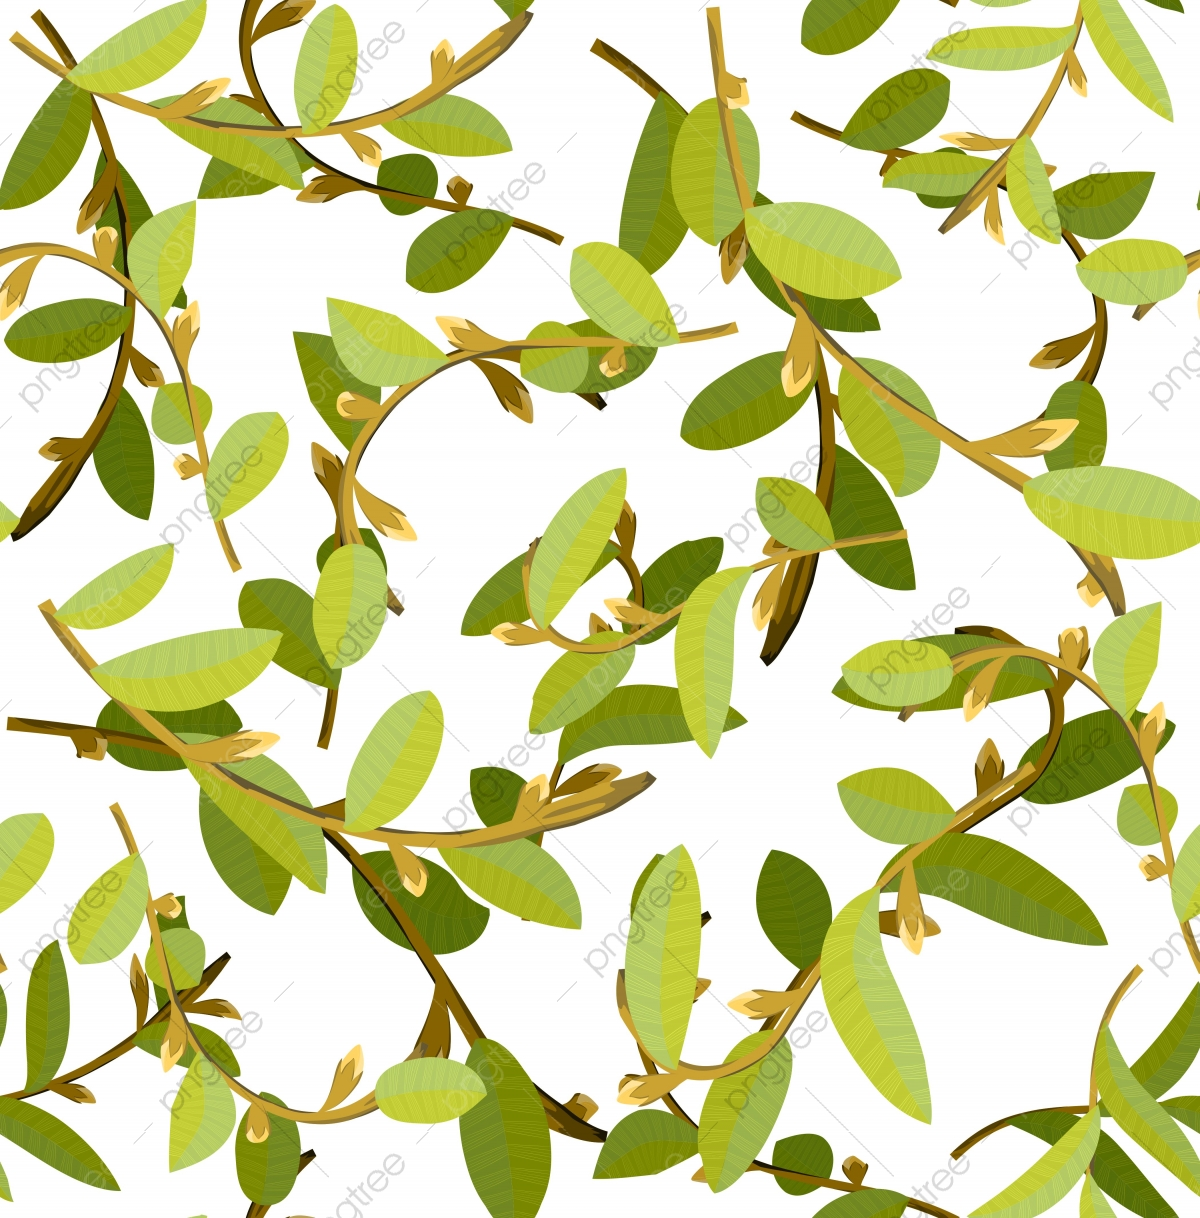 Natural Hand Drawing Of Beautiful Branches With Dry And Green Leaves Repeat Pattern Design Green Leaf Plant Png And Vector With Transparent Background For Free Download